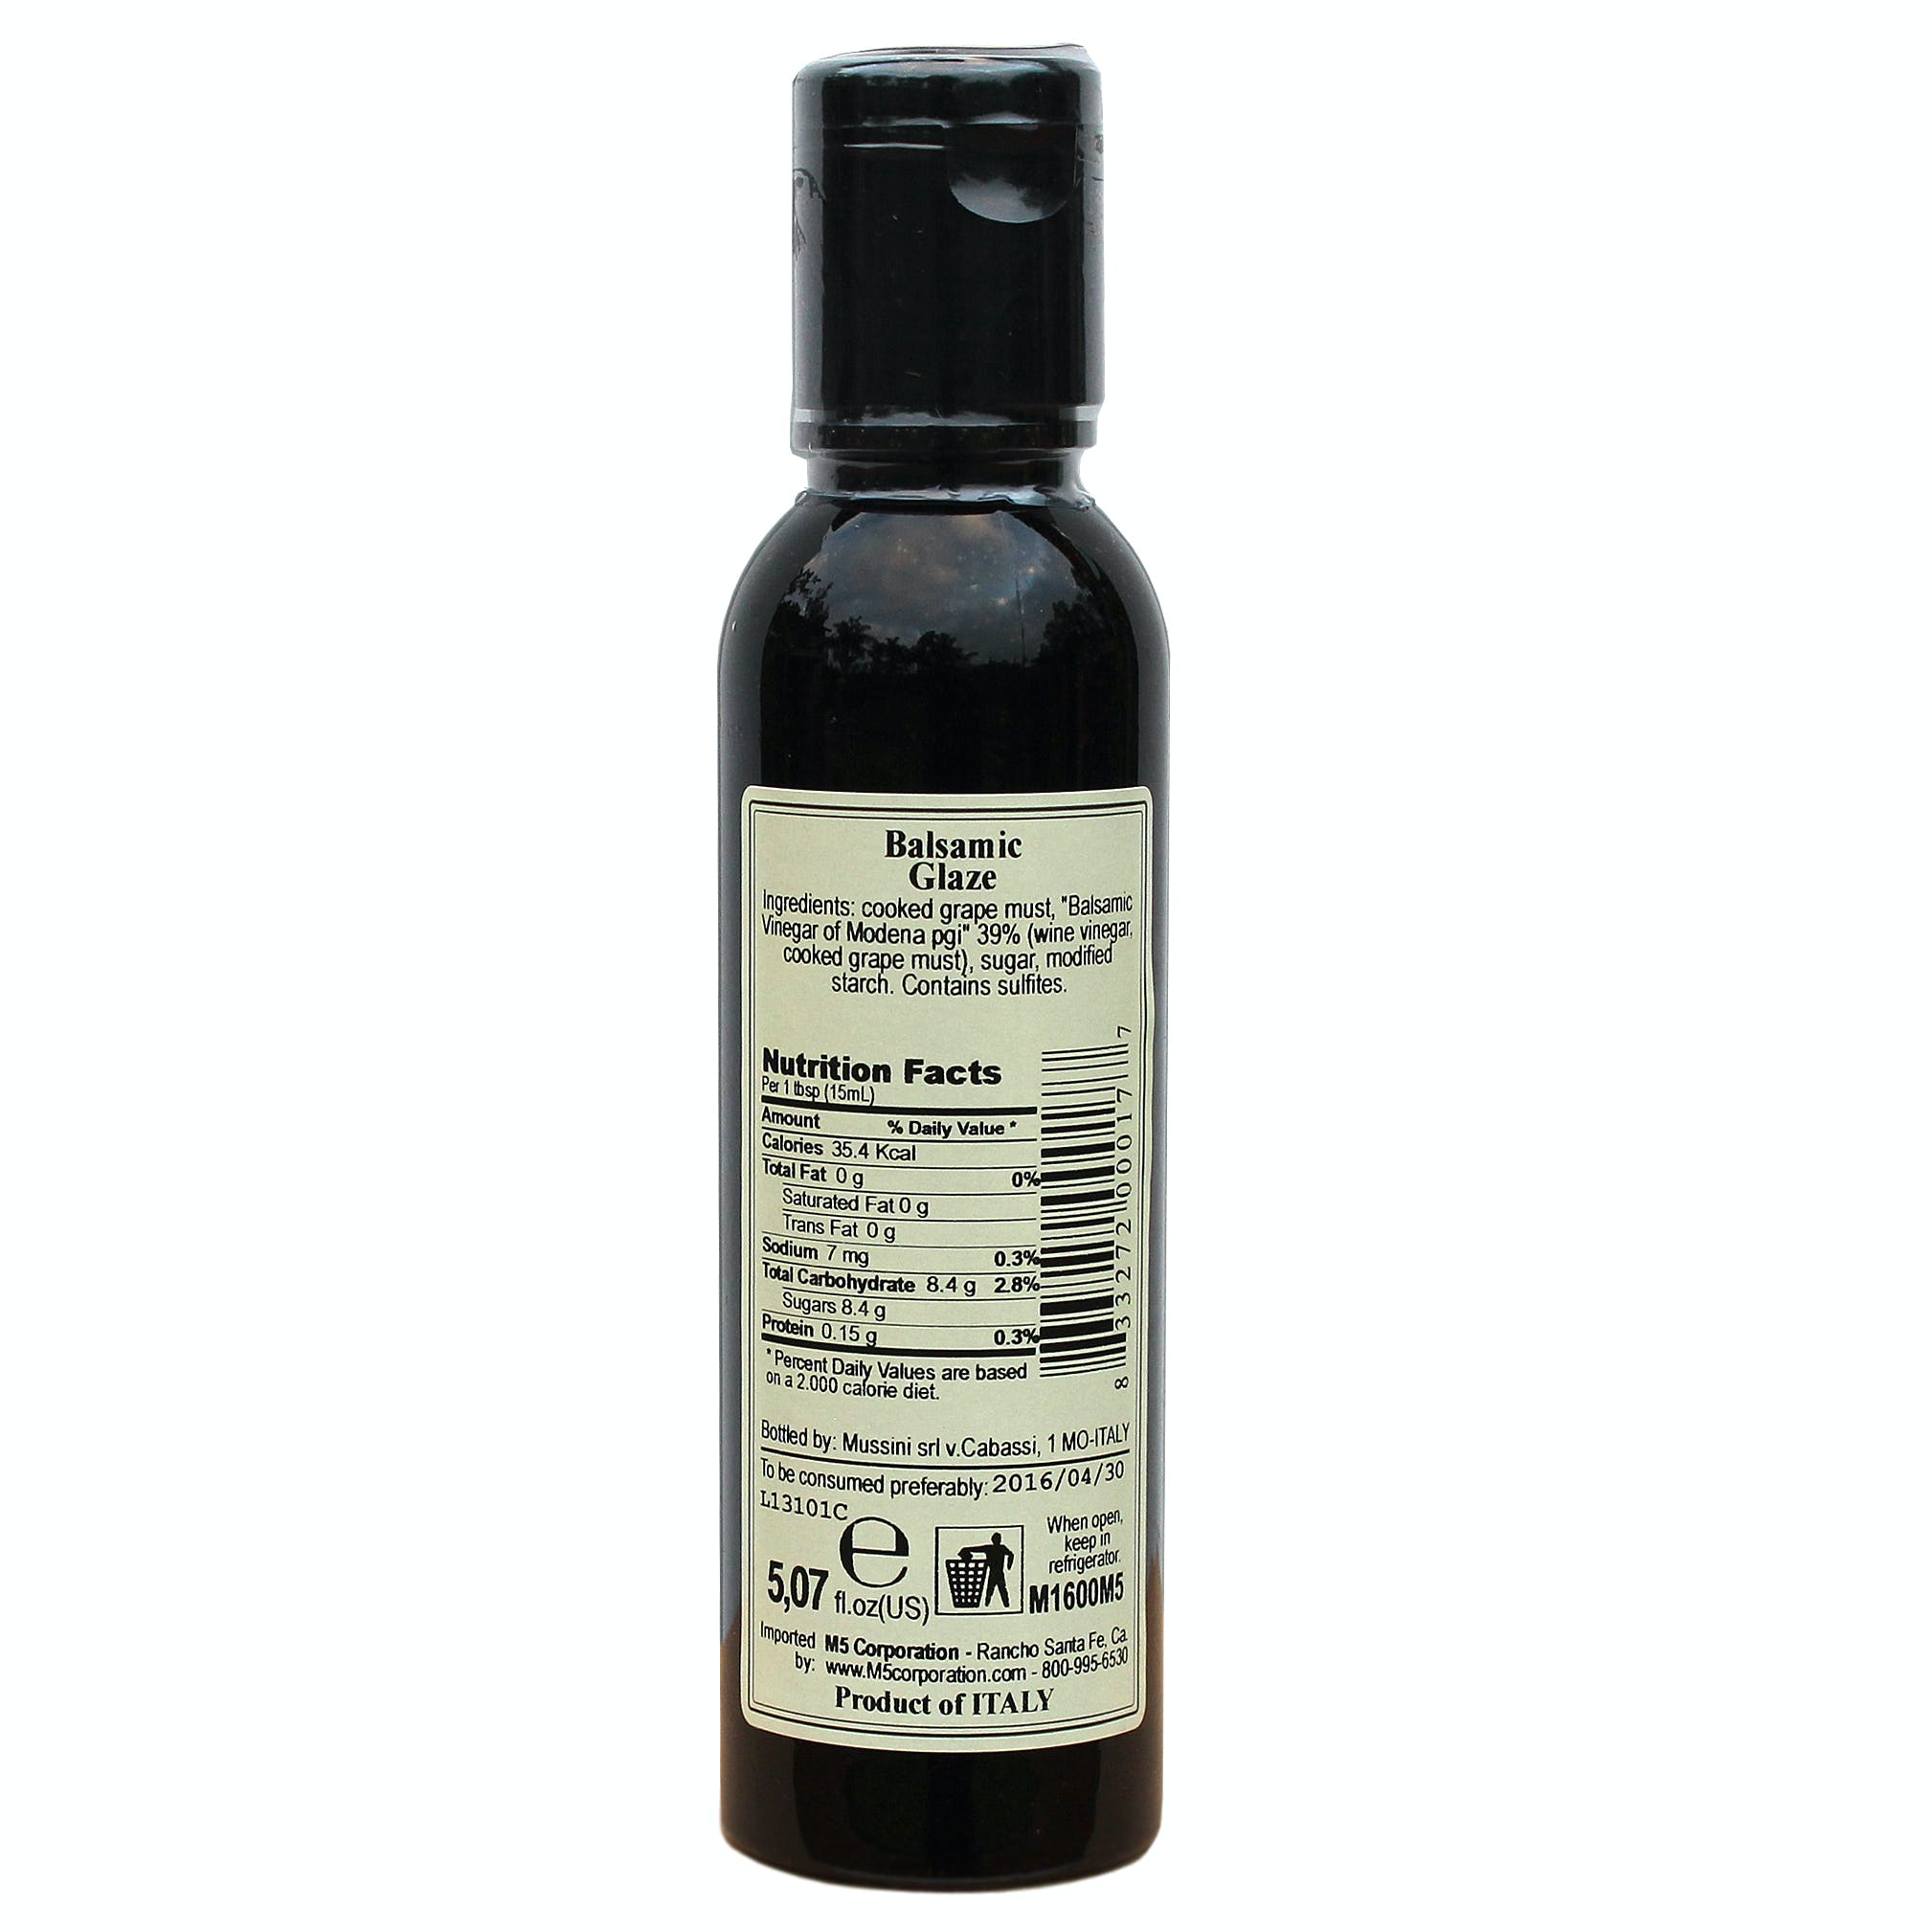 Italian Dark Balsamic Glazes From Mussini, 5.1 Ounces - sold by M5 Corporation